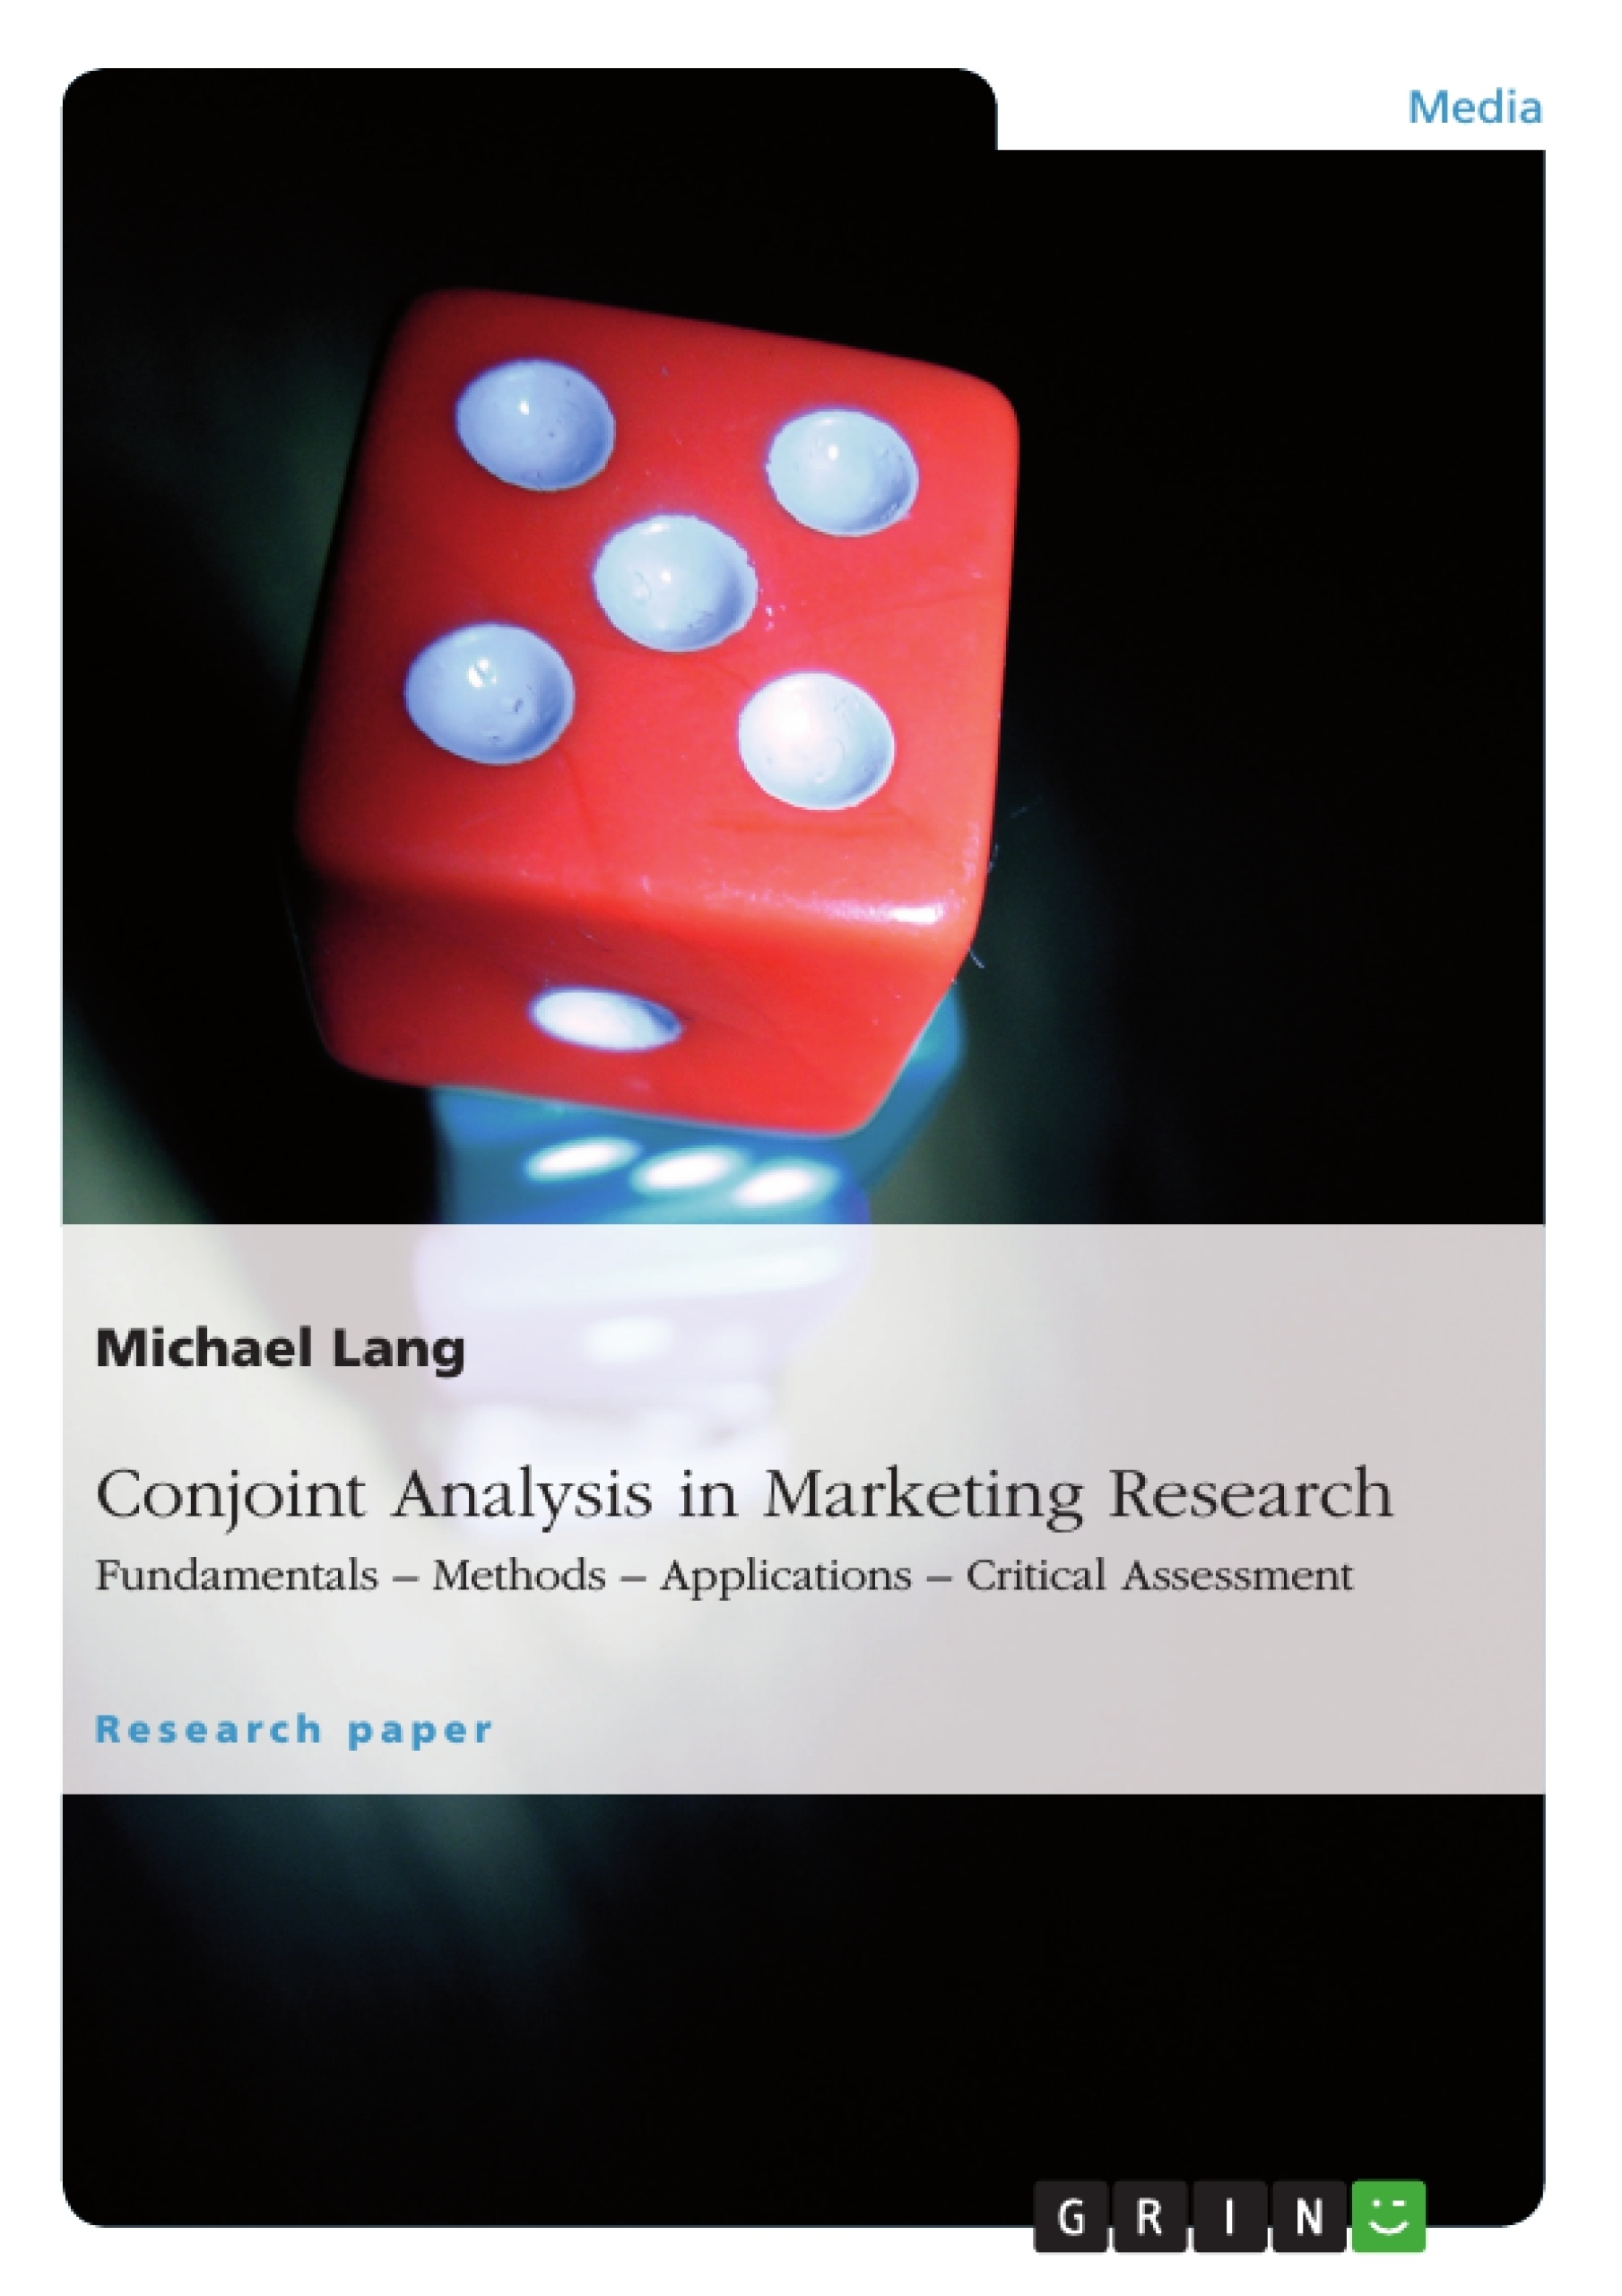 Title: Conjoint Analysis in Marketing Research